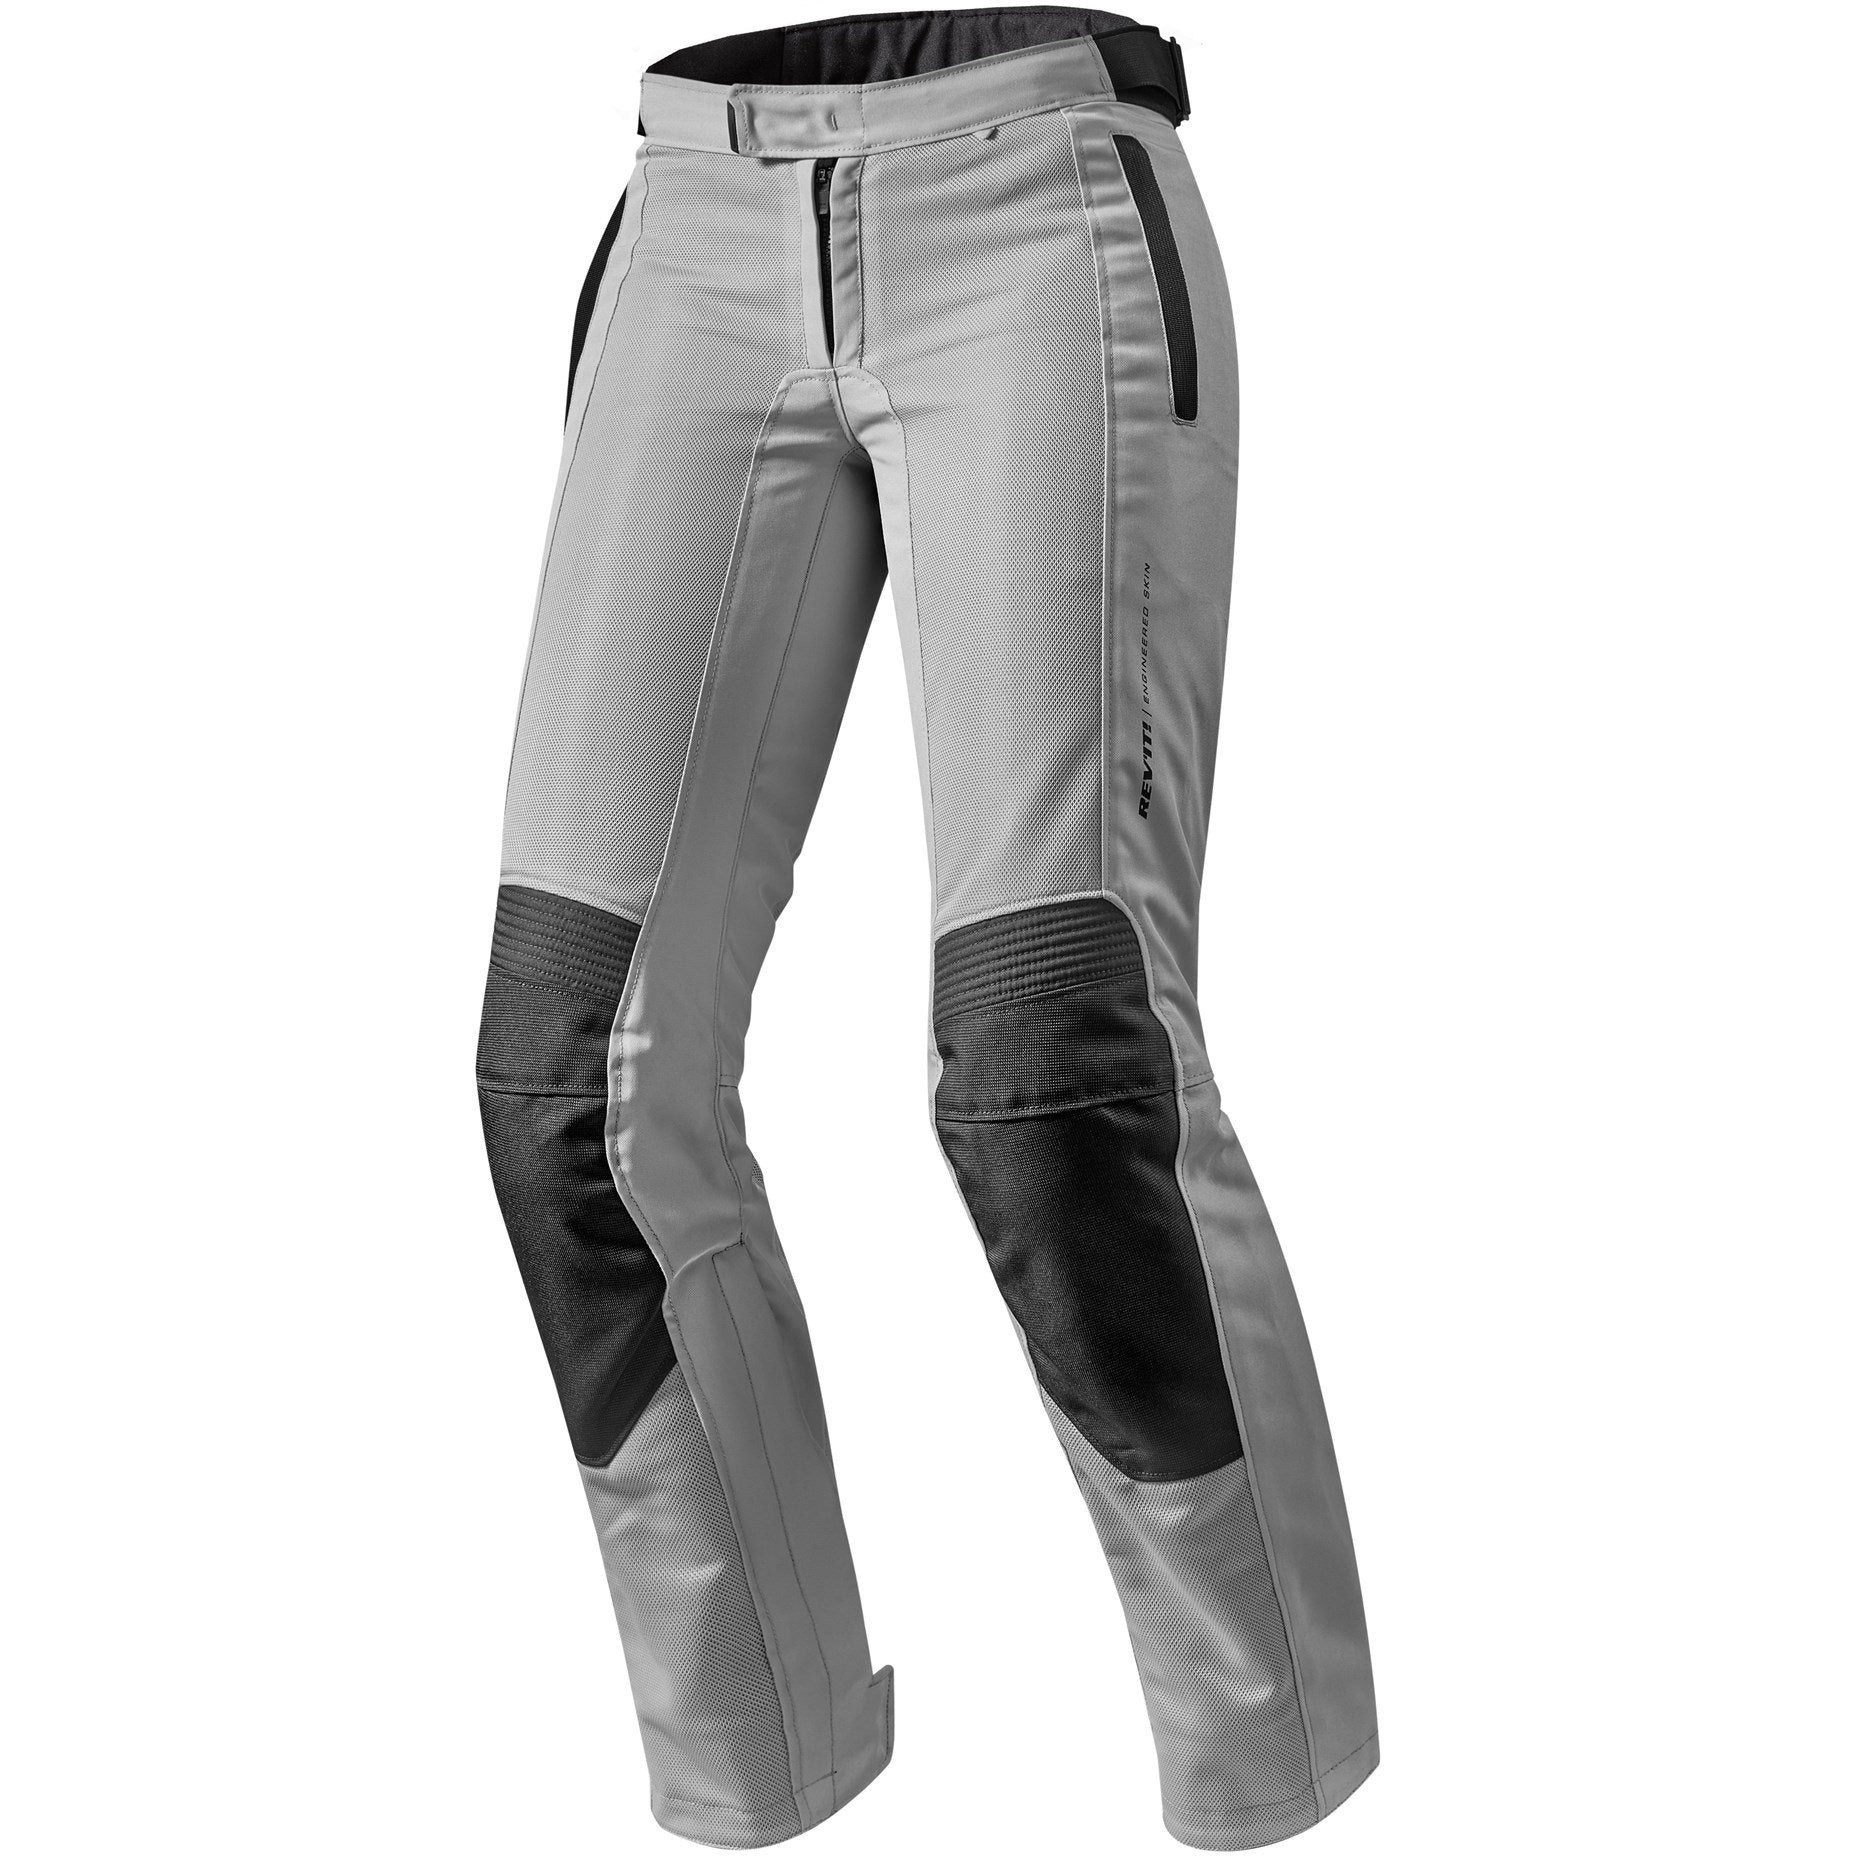 PANTALÓN REVIT AIRWAVE 2 LADIES SILVER SHORT